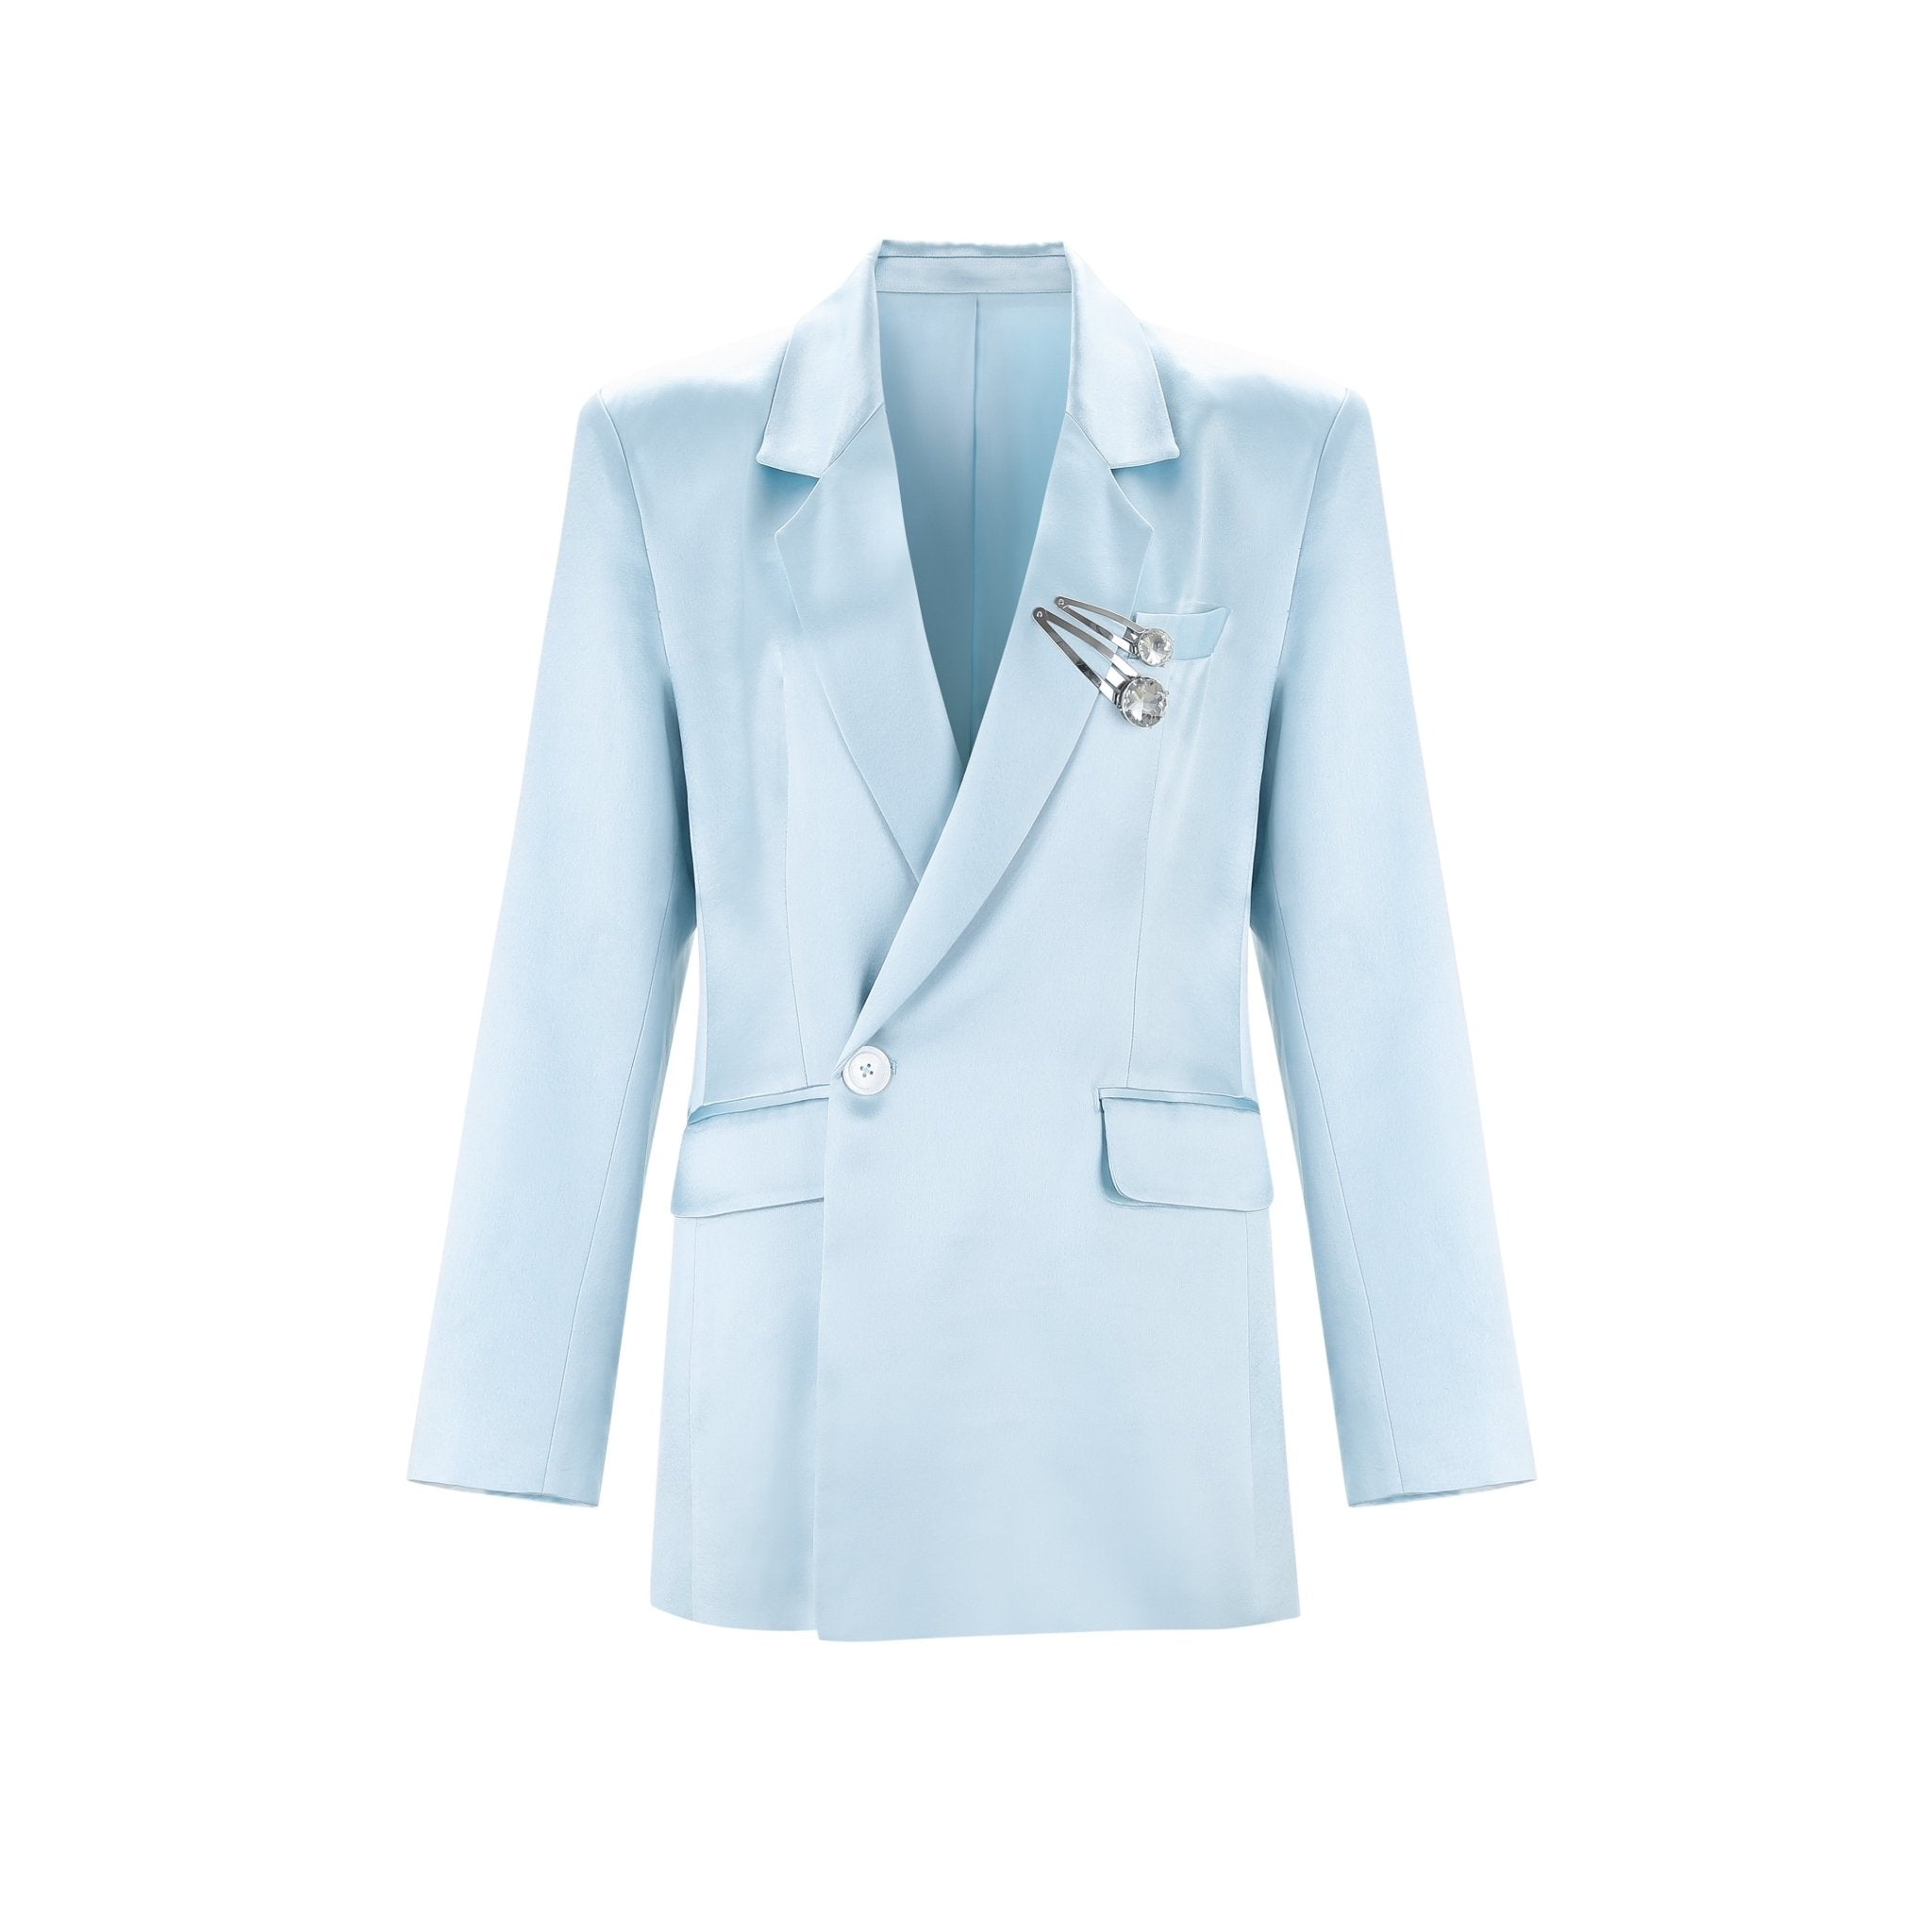 WARM AID Blue Triacetate Suit Jacket | MADA IN CHINA